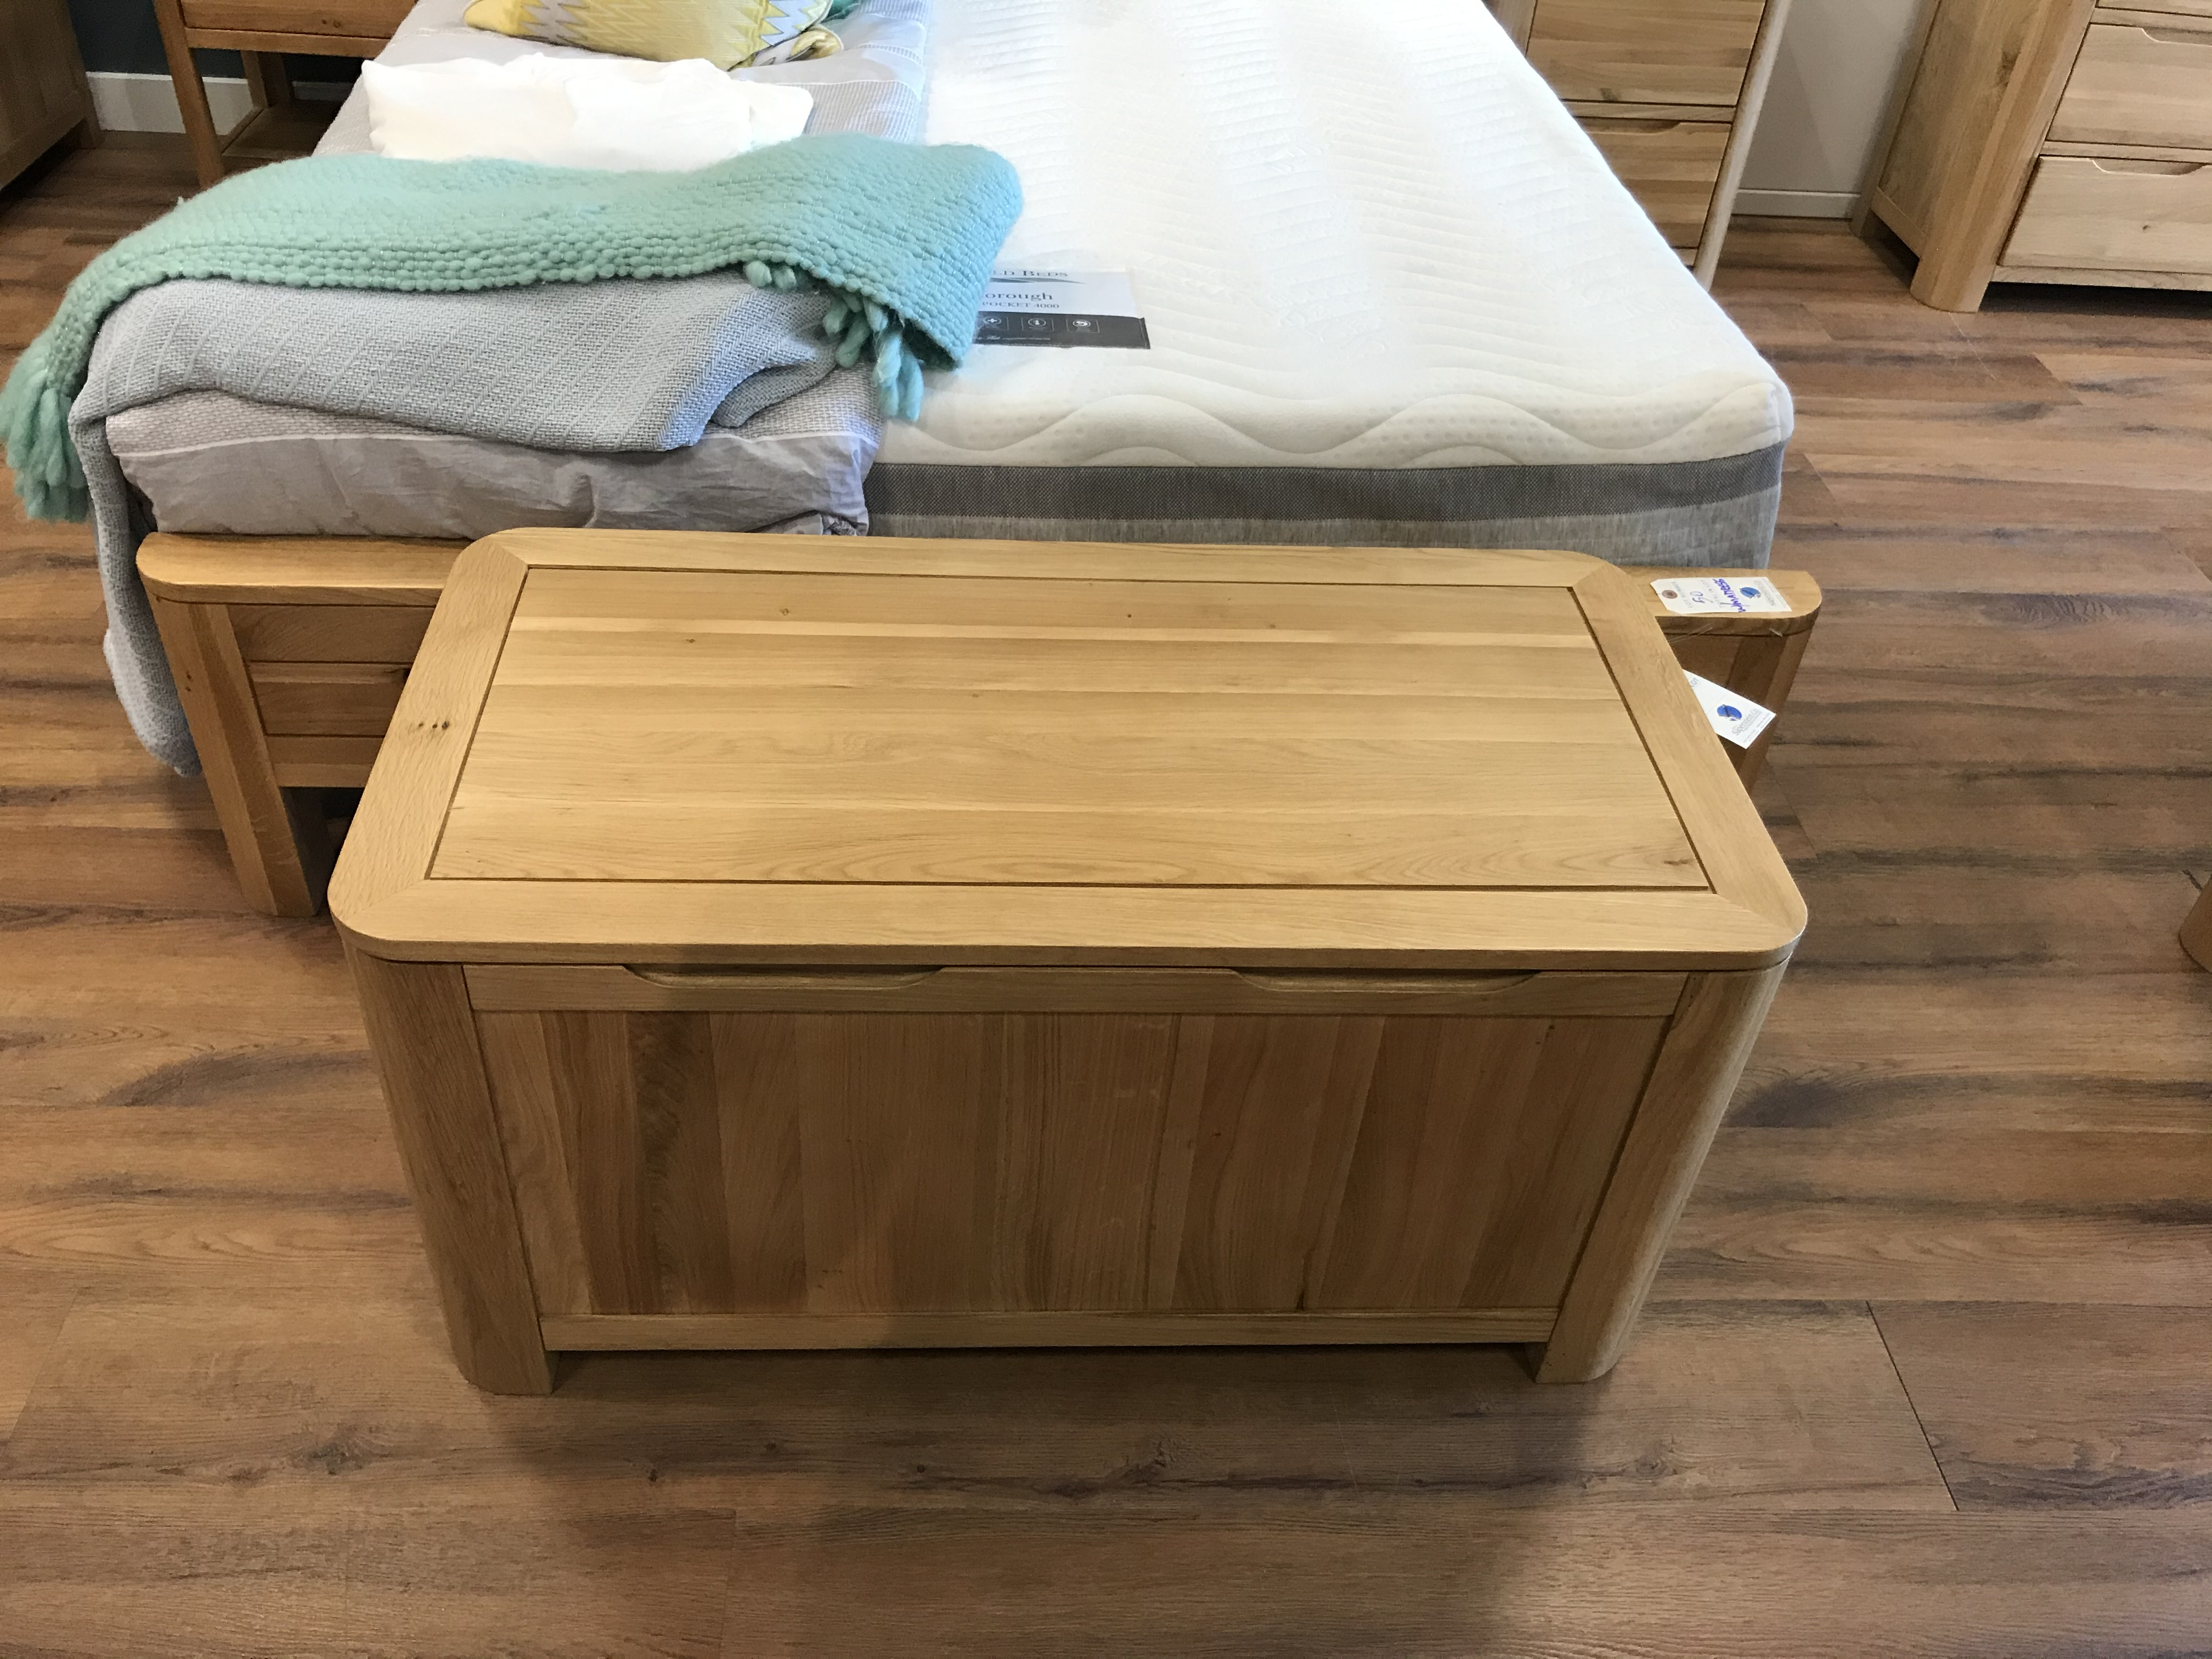 Chest (Romsey) See Picture For Dimensions and Product Info - Image 2 of 3